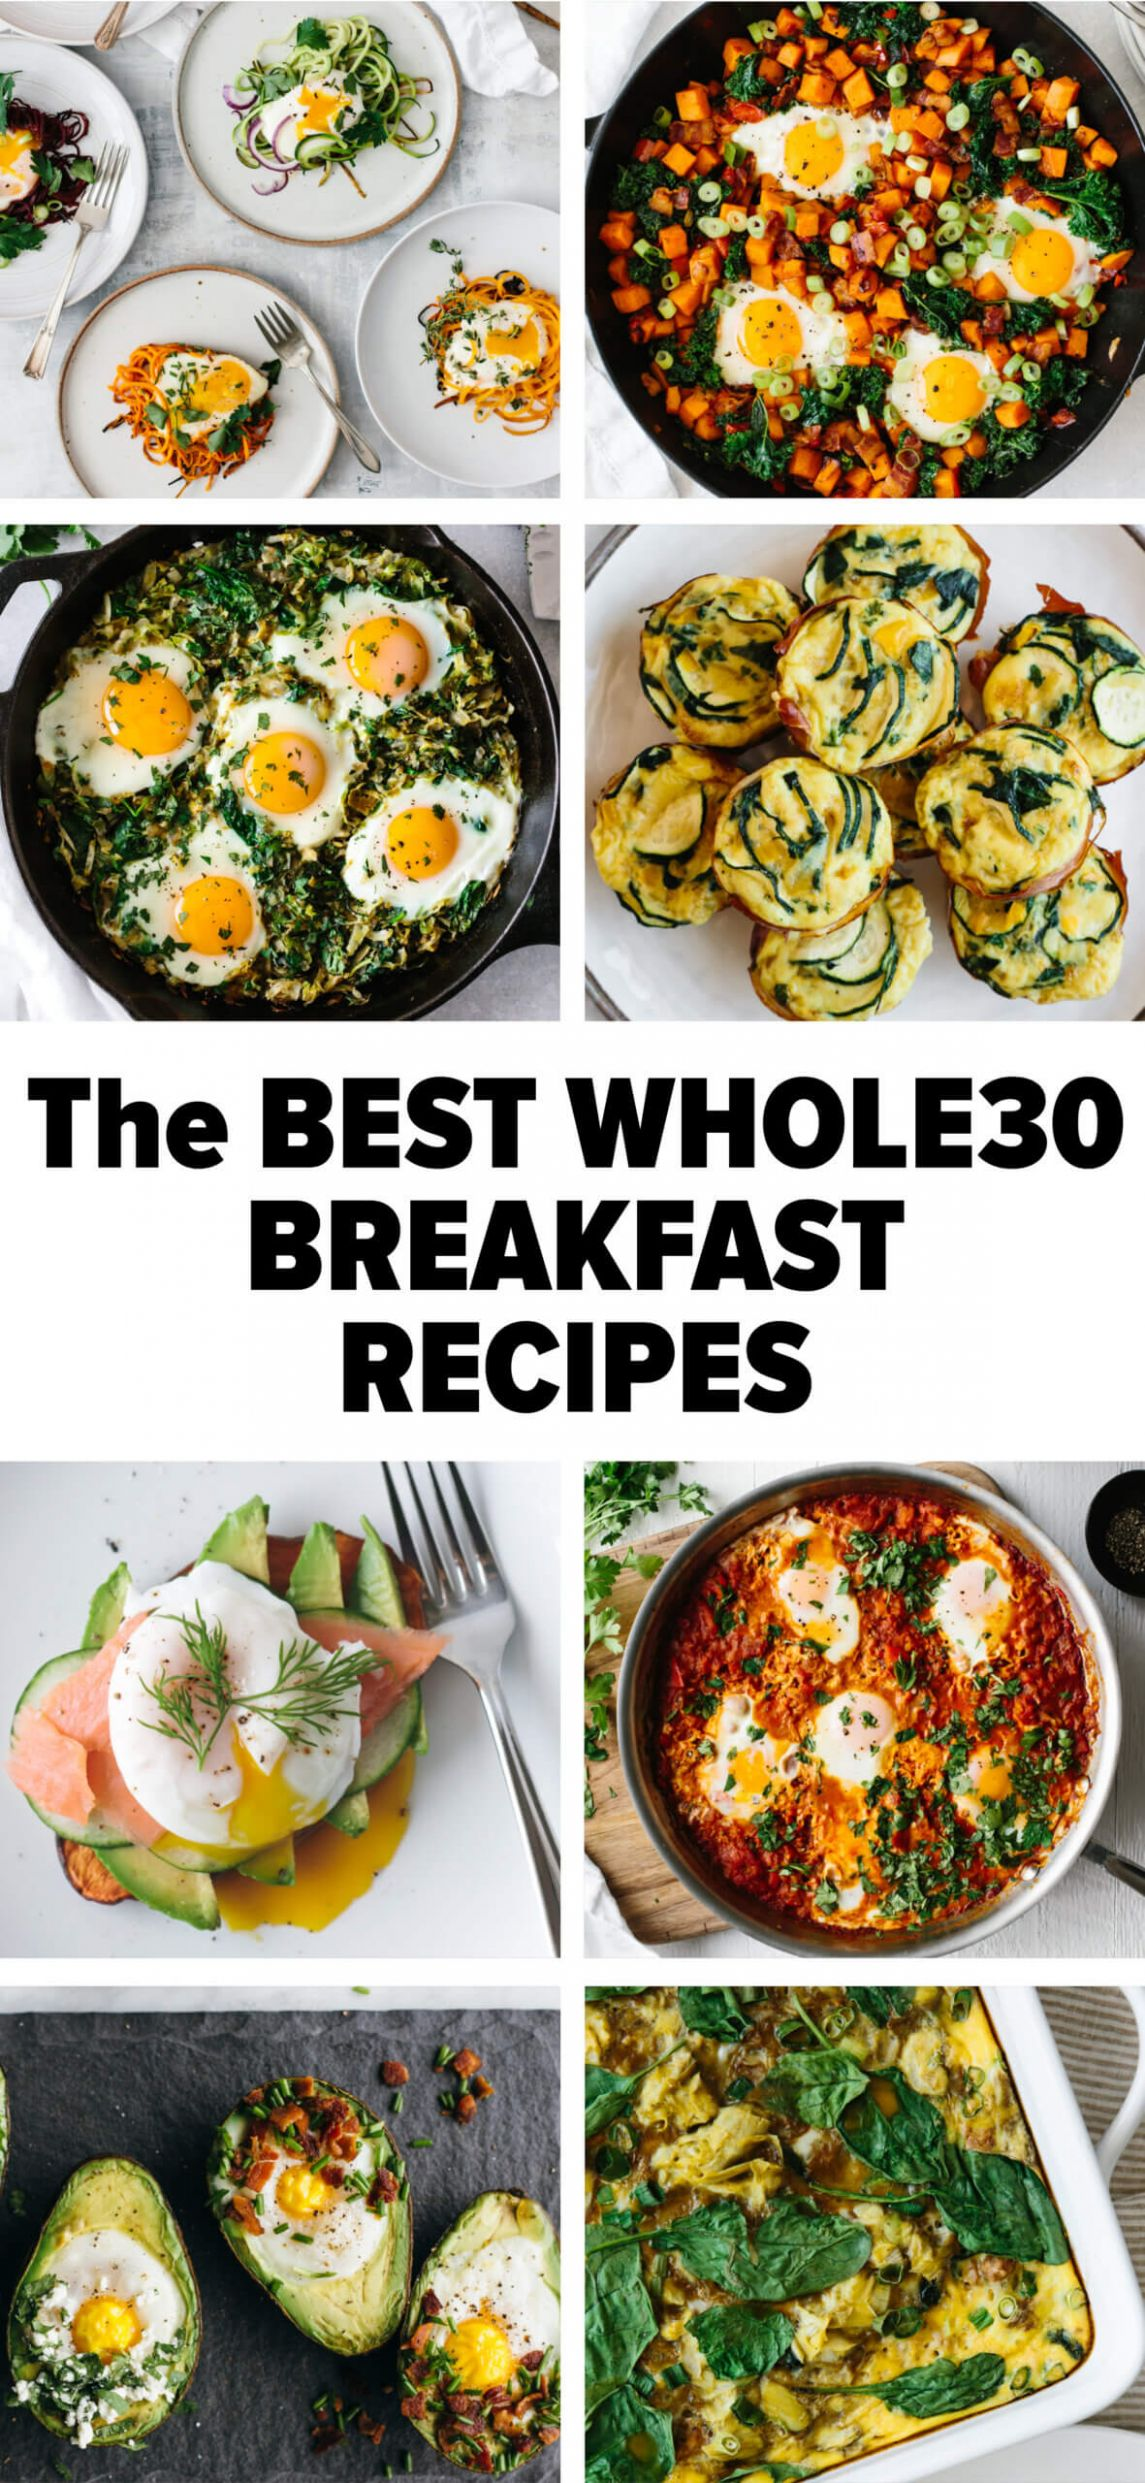 12+ Healthy Whole12 Breakfast Recipes | Downshiftology